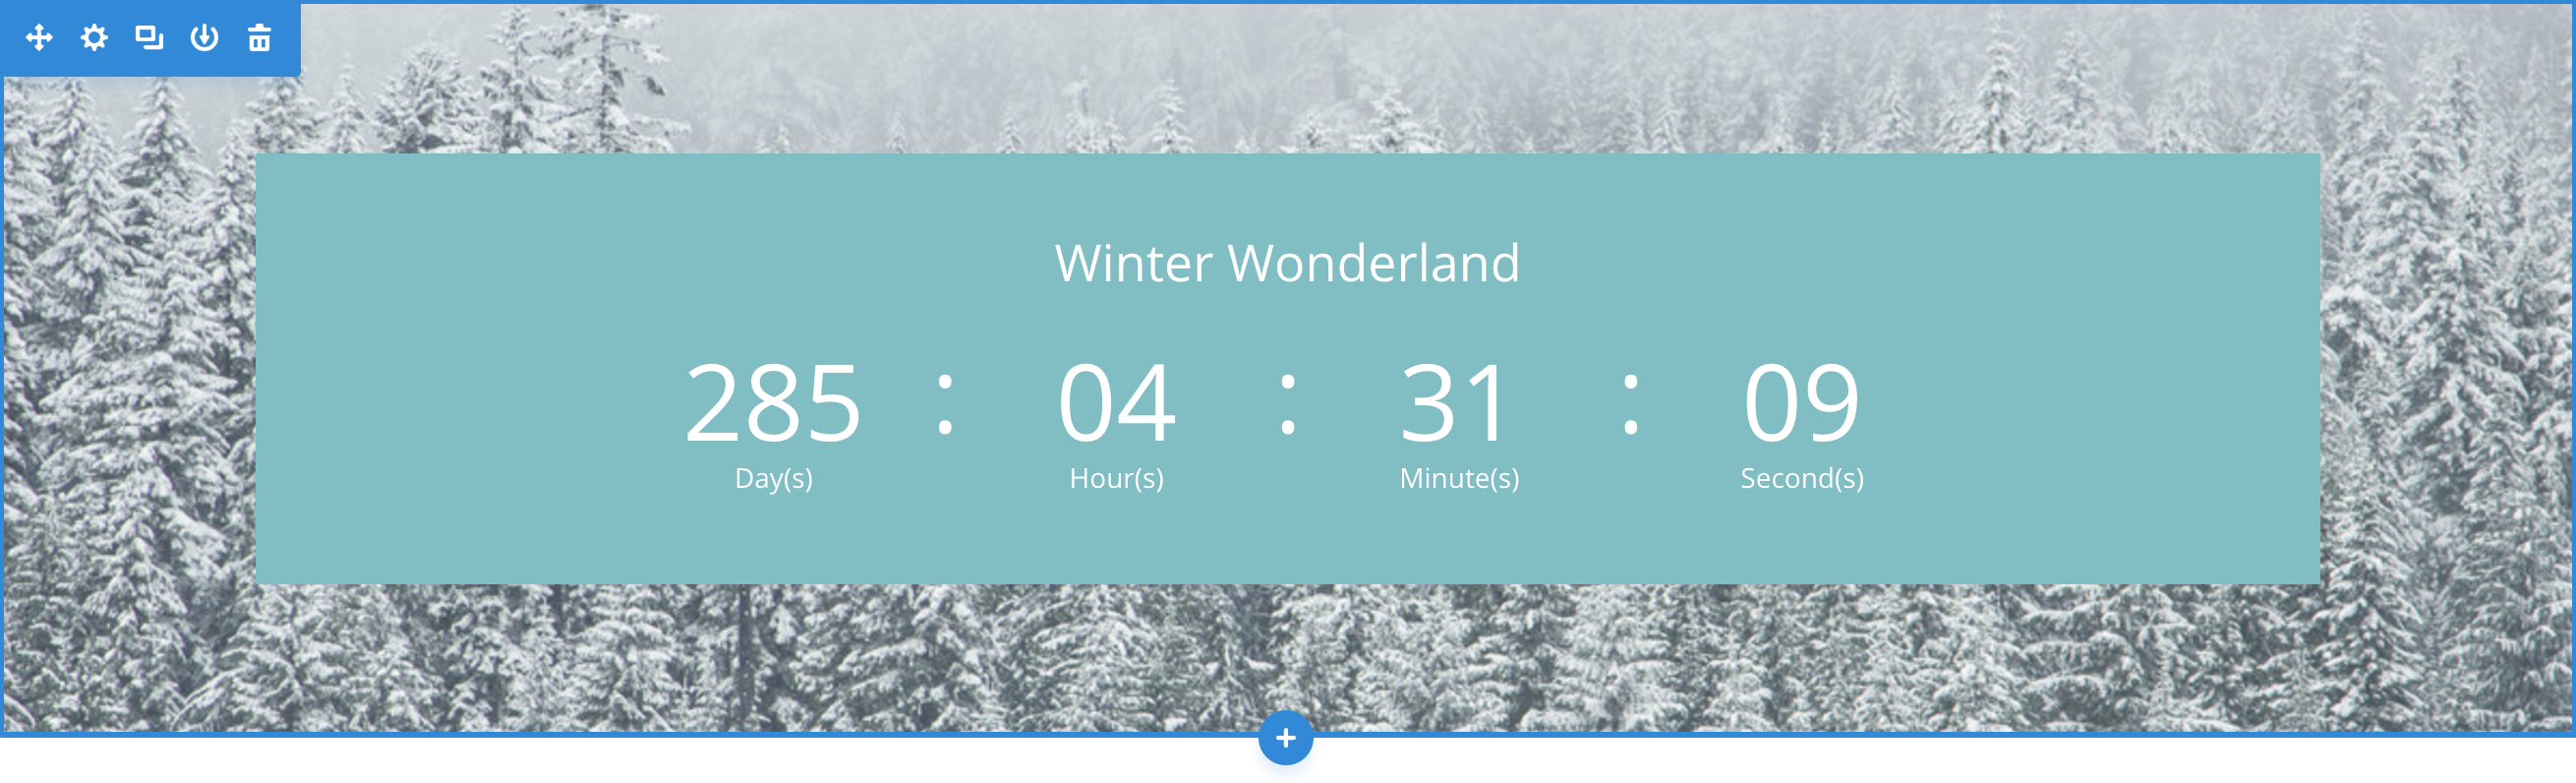 divi-countdown-timer-module-with-background-image